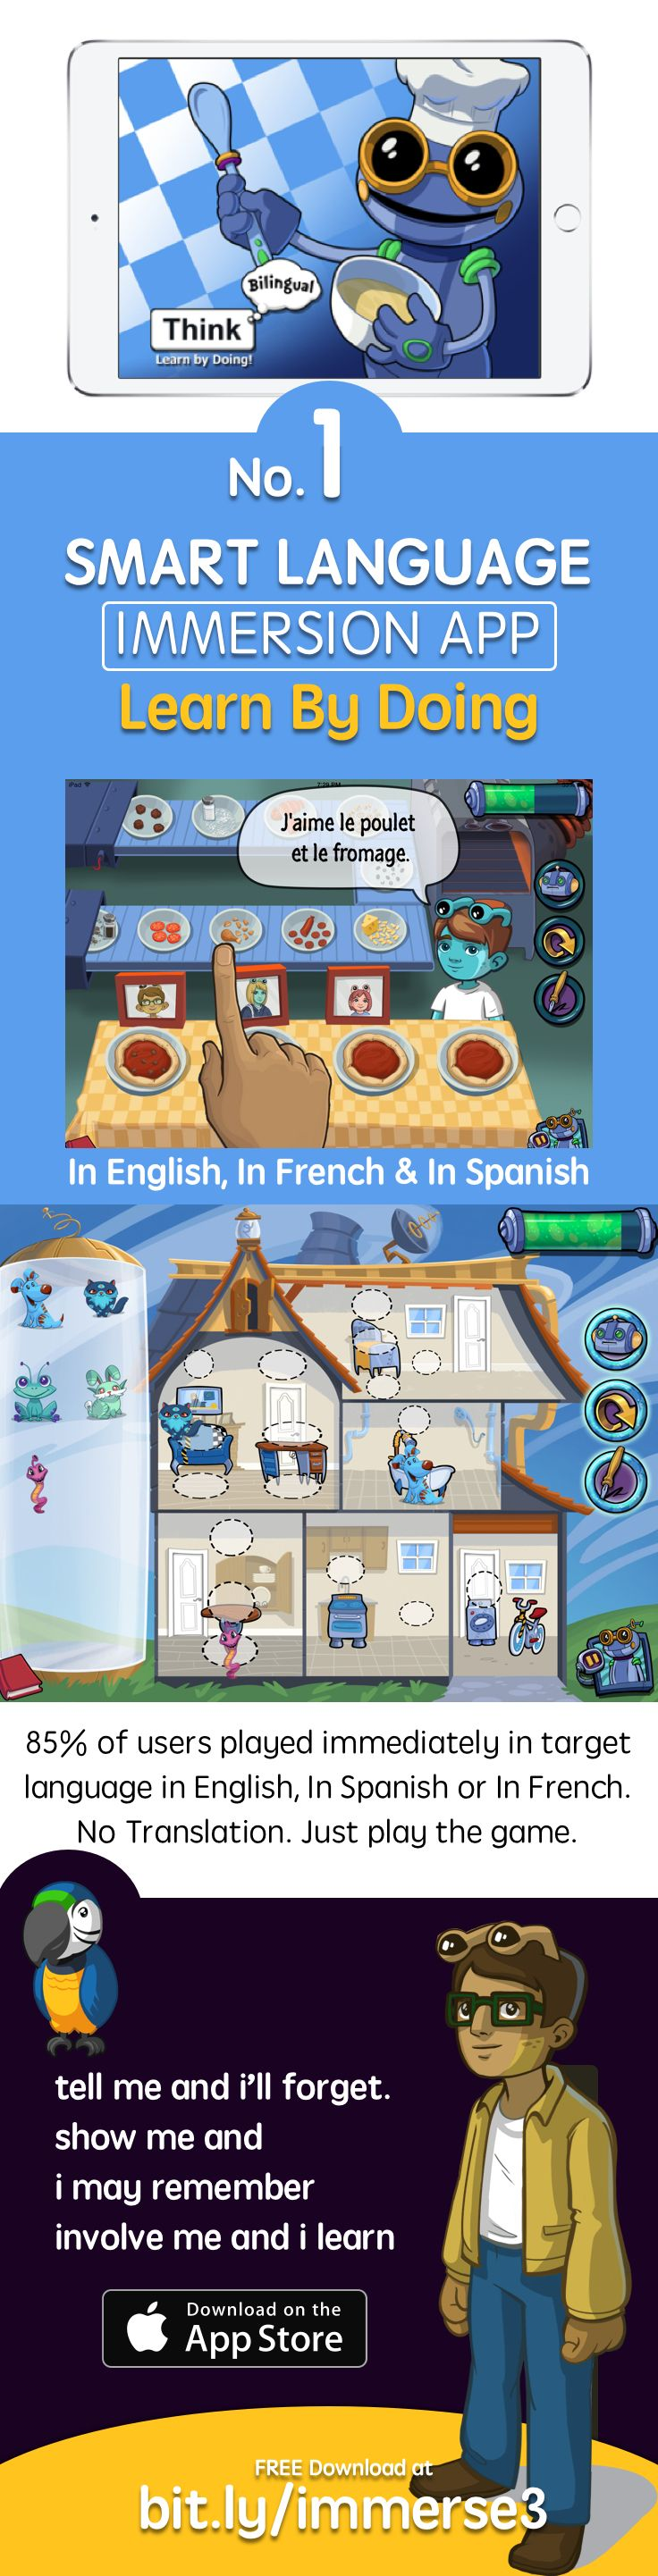 Learn French using the first ever Immersion app Free download https://itunes.apple.com/app/apple-store/id984967146?pt=1948807&ct=immerse3&mt=8